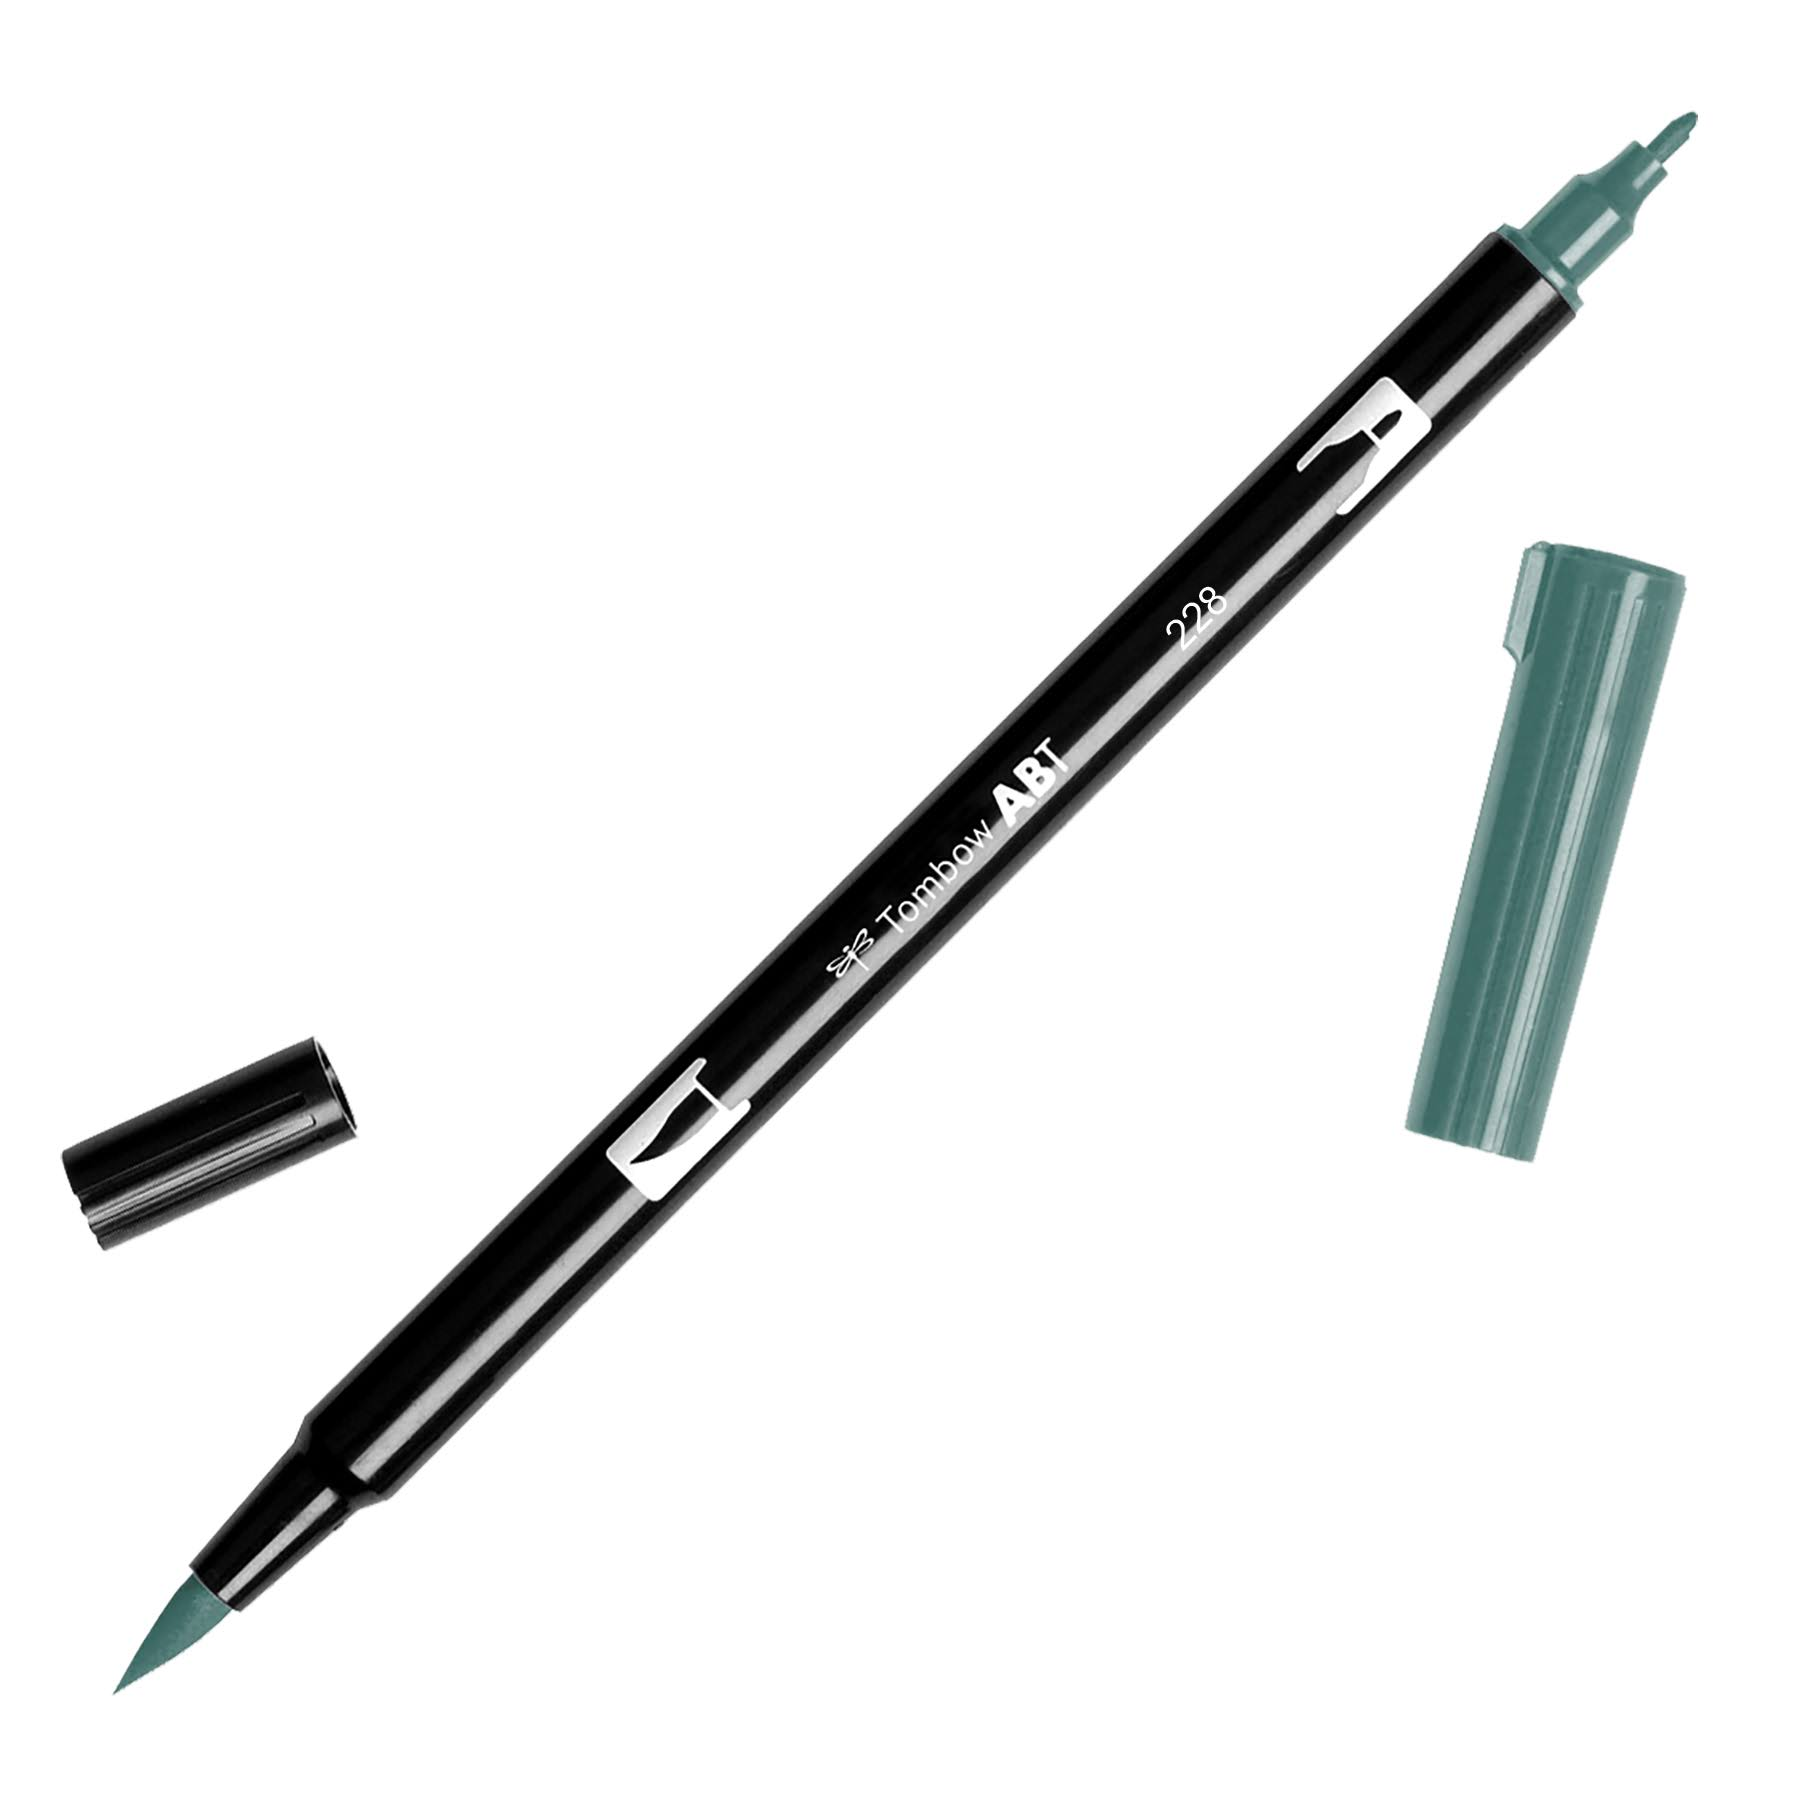 Tombow Dual Brush Pen - 228 Grey Green